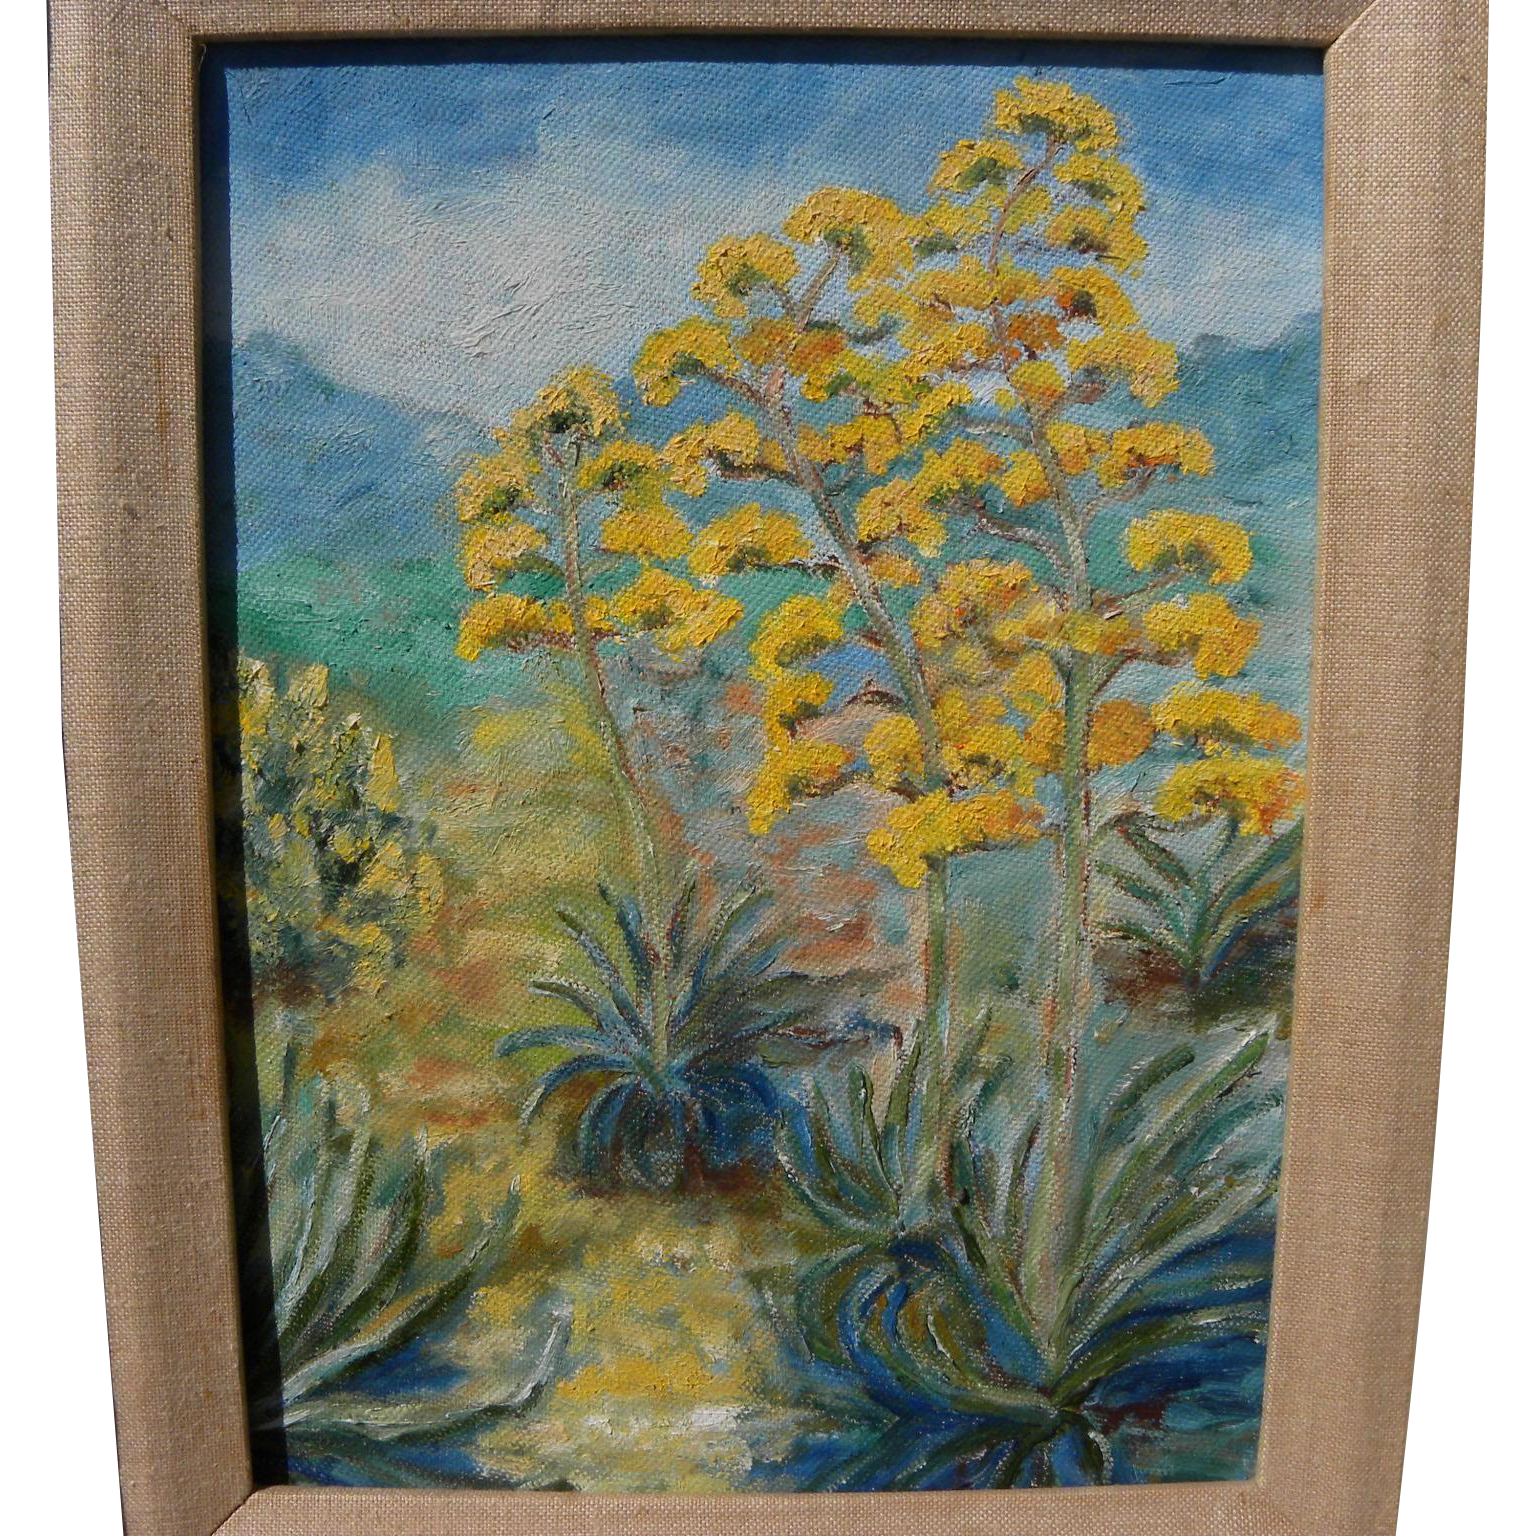 California plein air art desert landscape painting of flowering agave